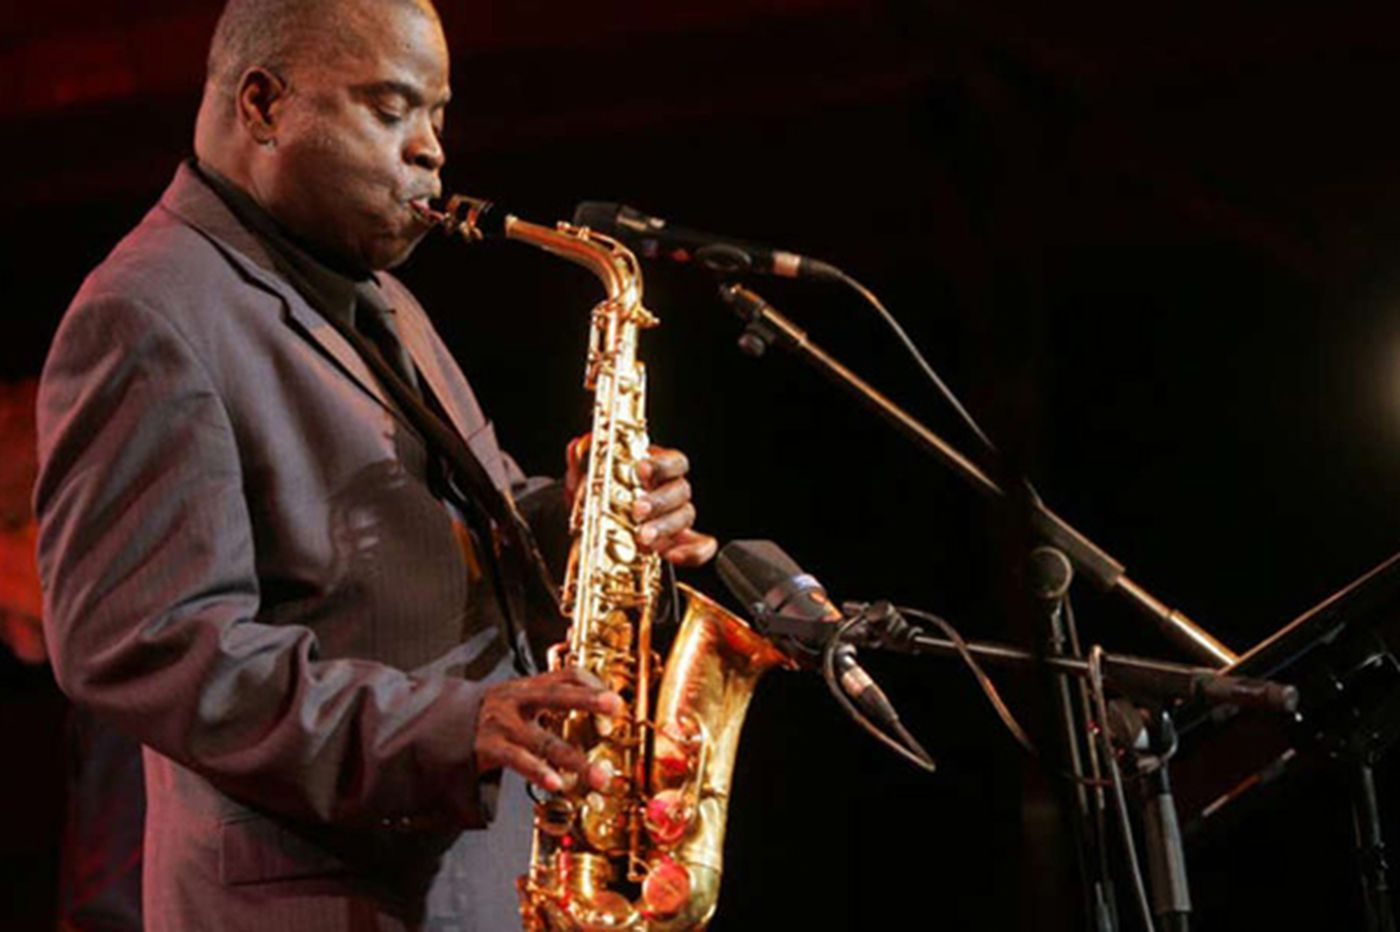 Maceo Parker brings that funky stuff